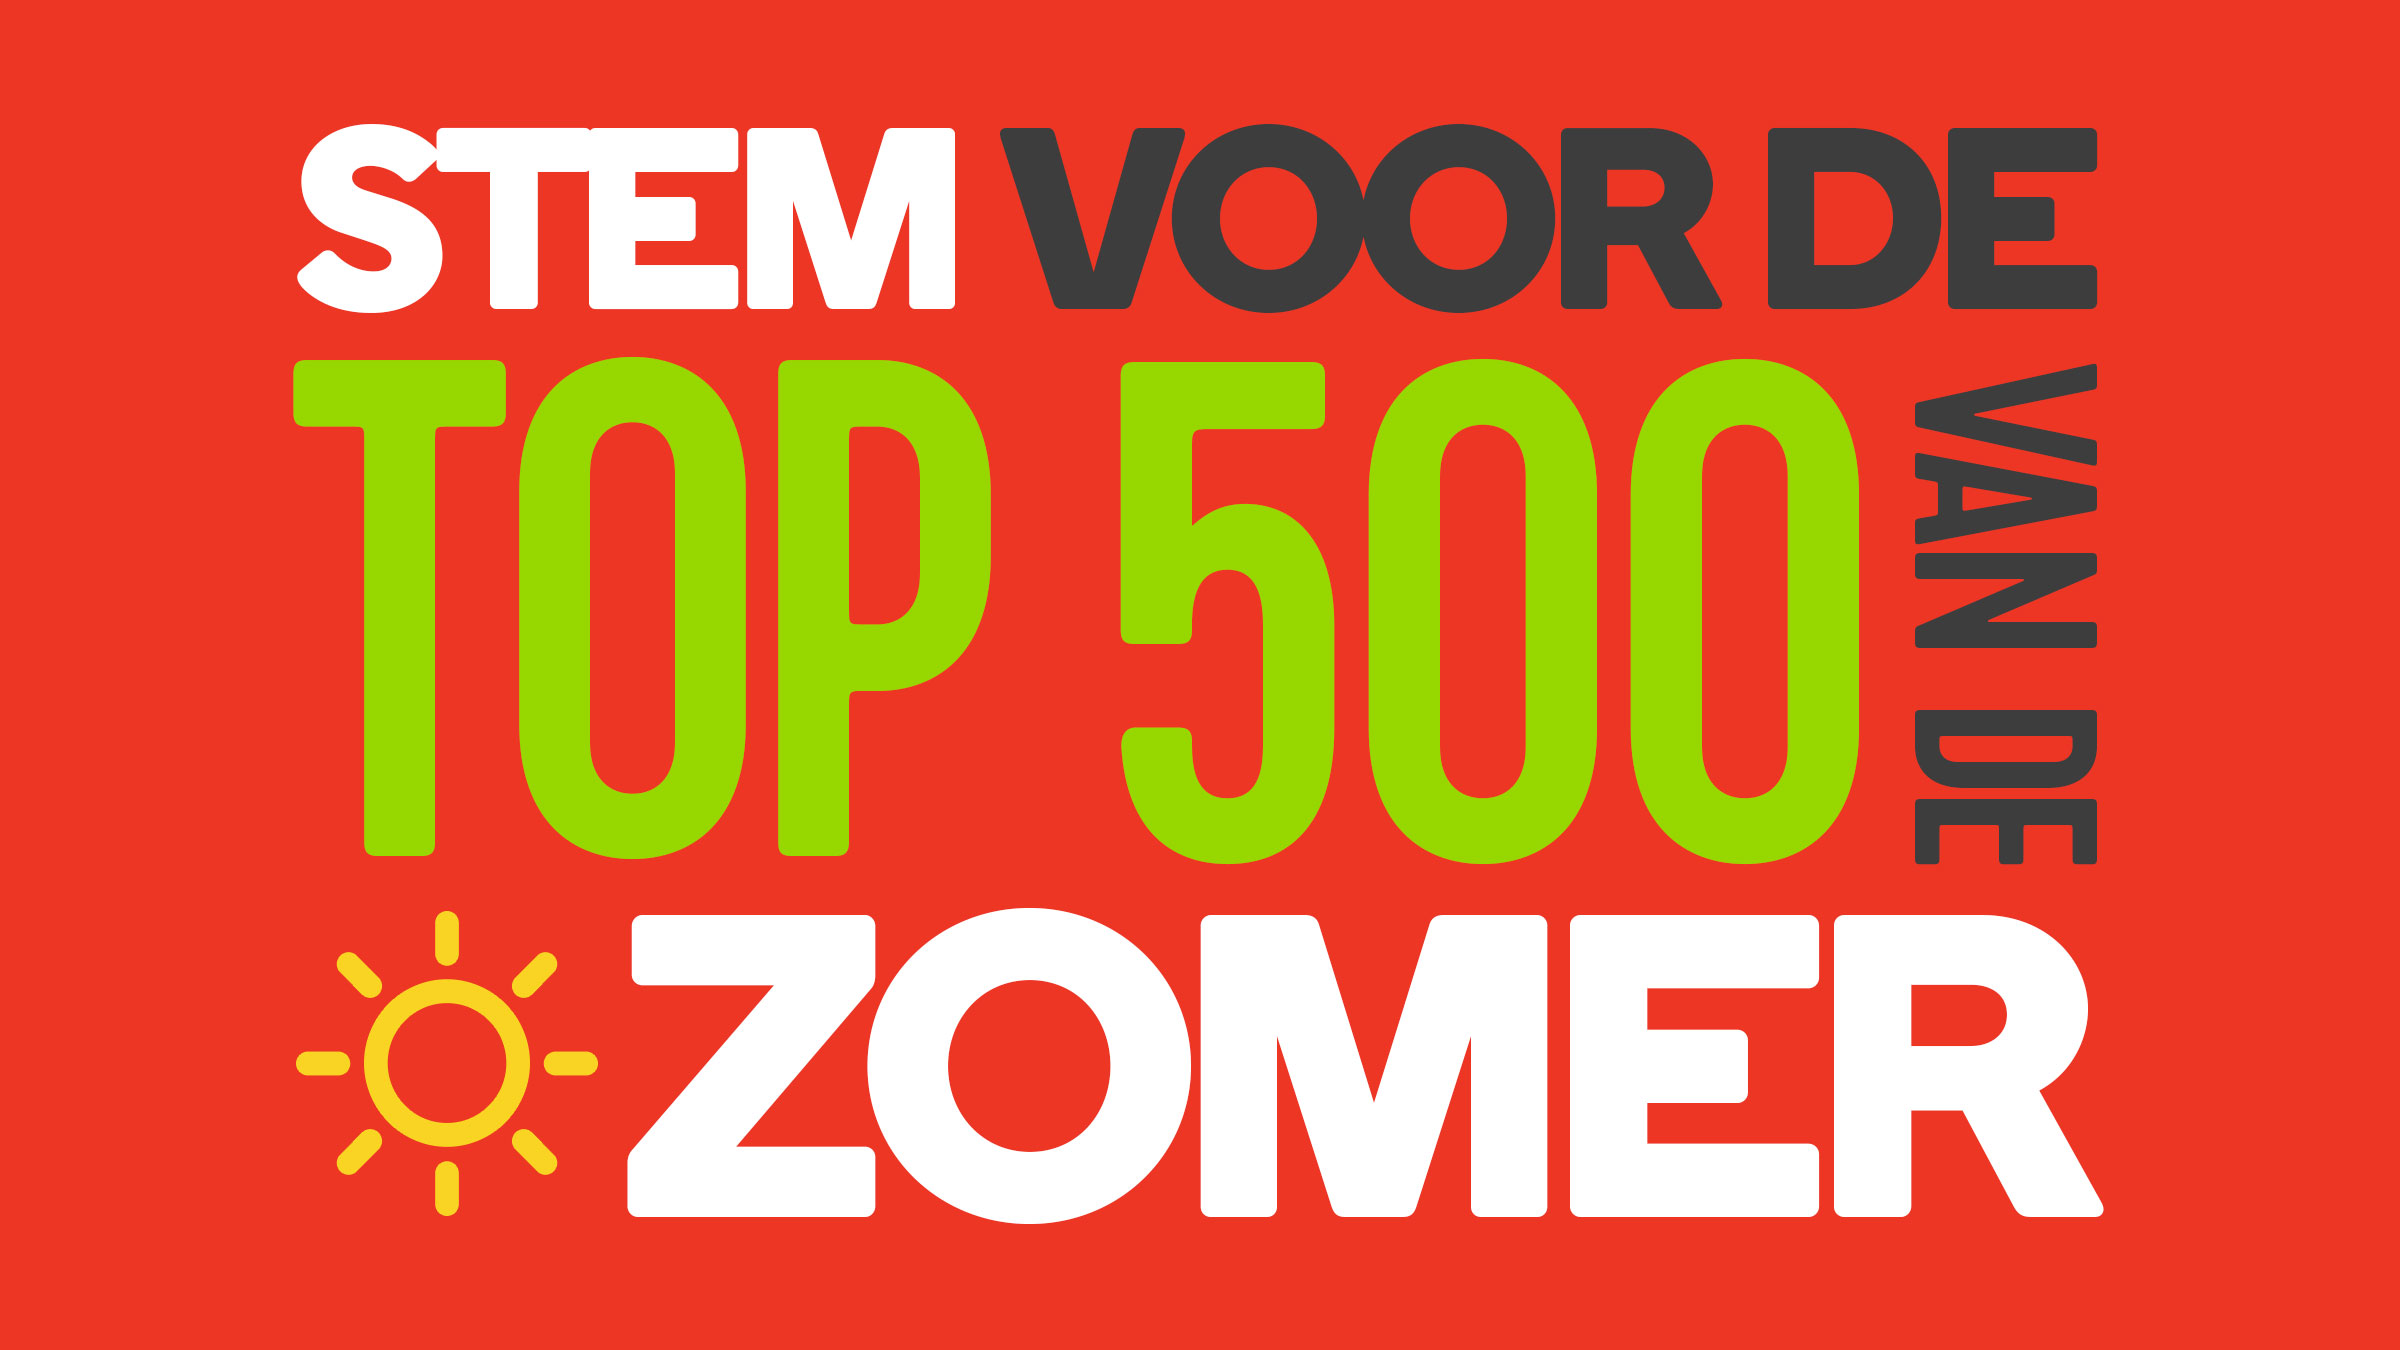 16x9 top500vdzomer stem